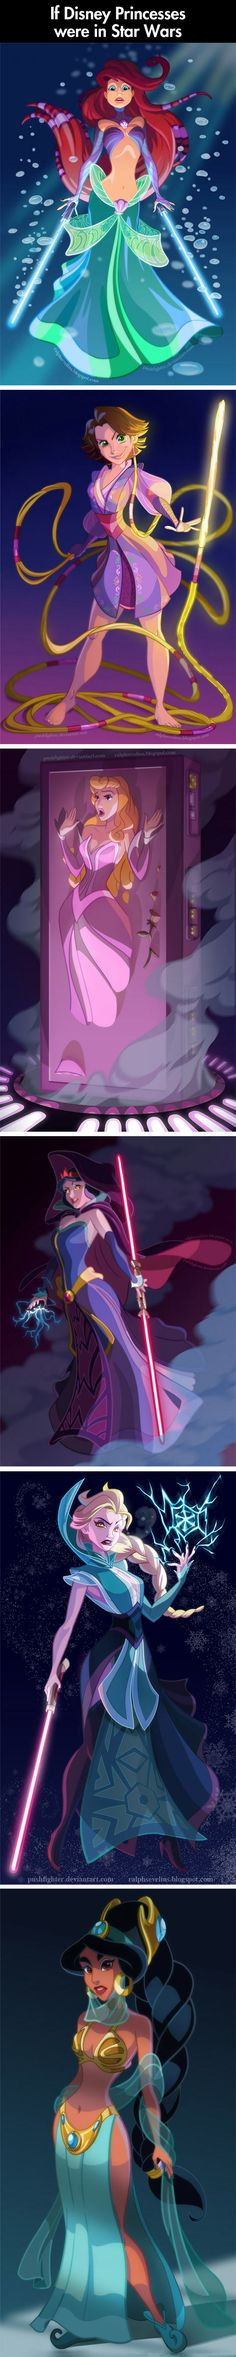 Disney Princesses In Star Wars